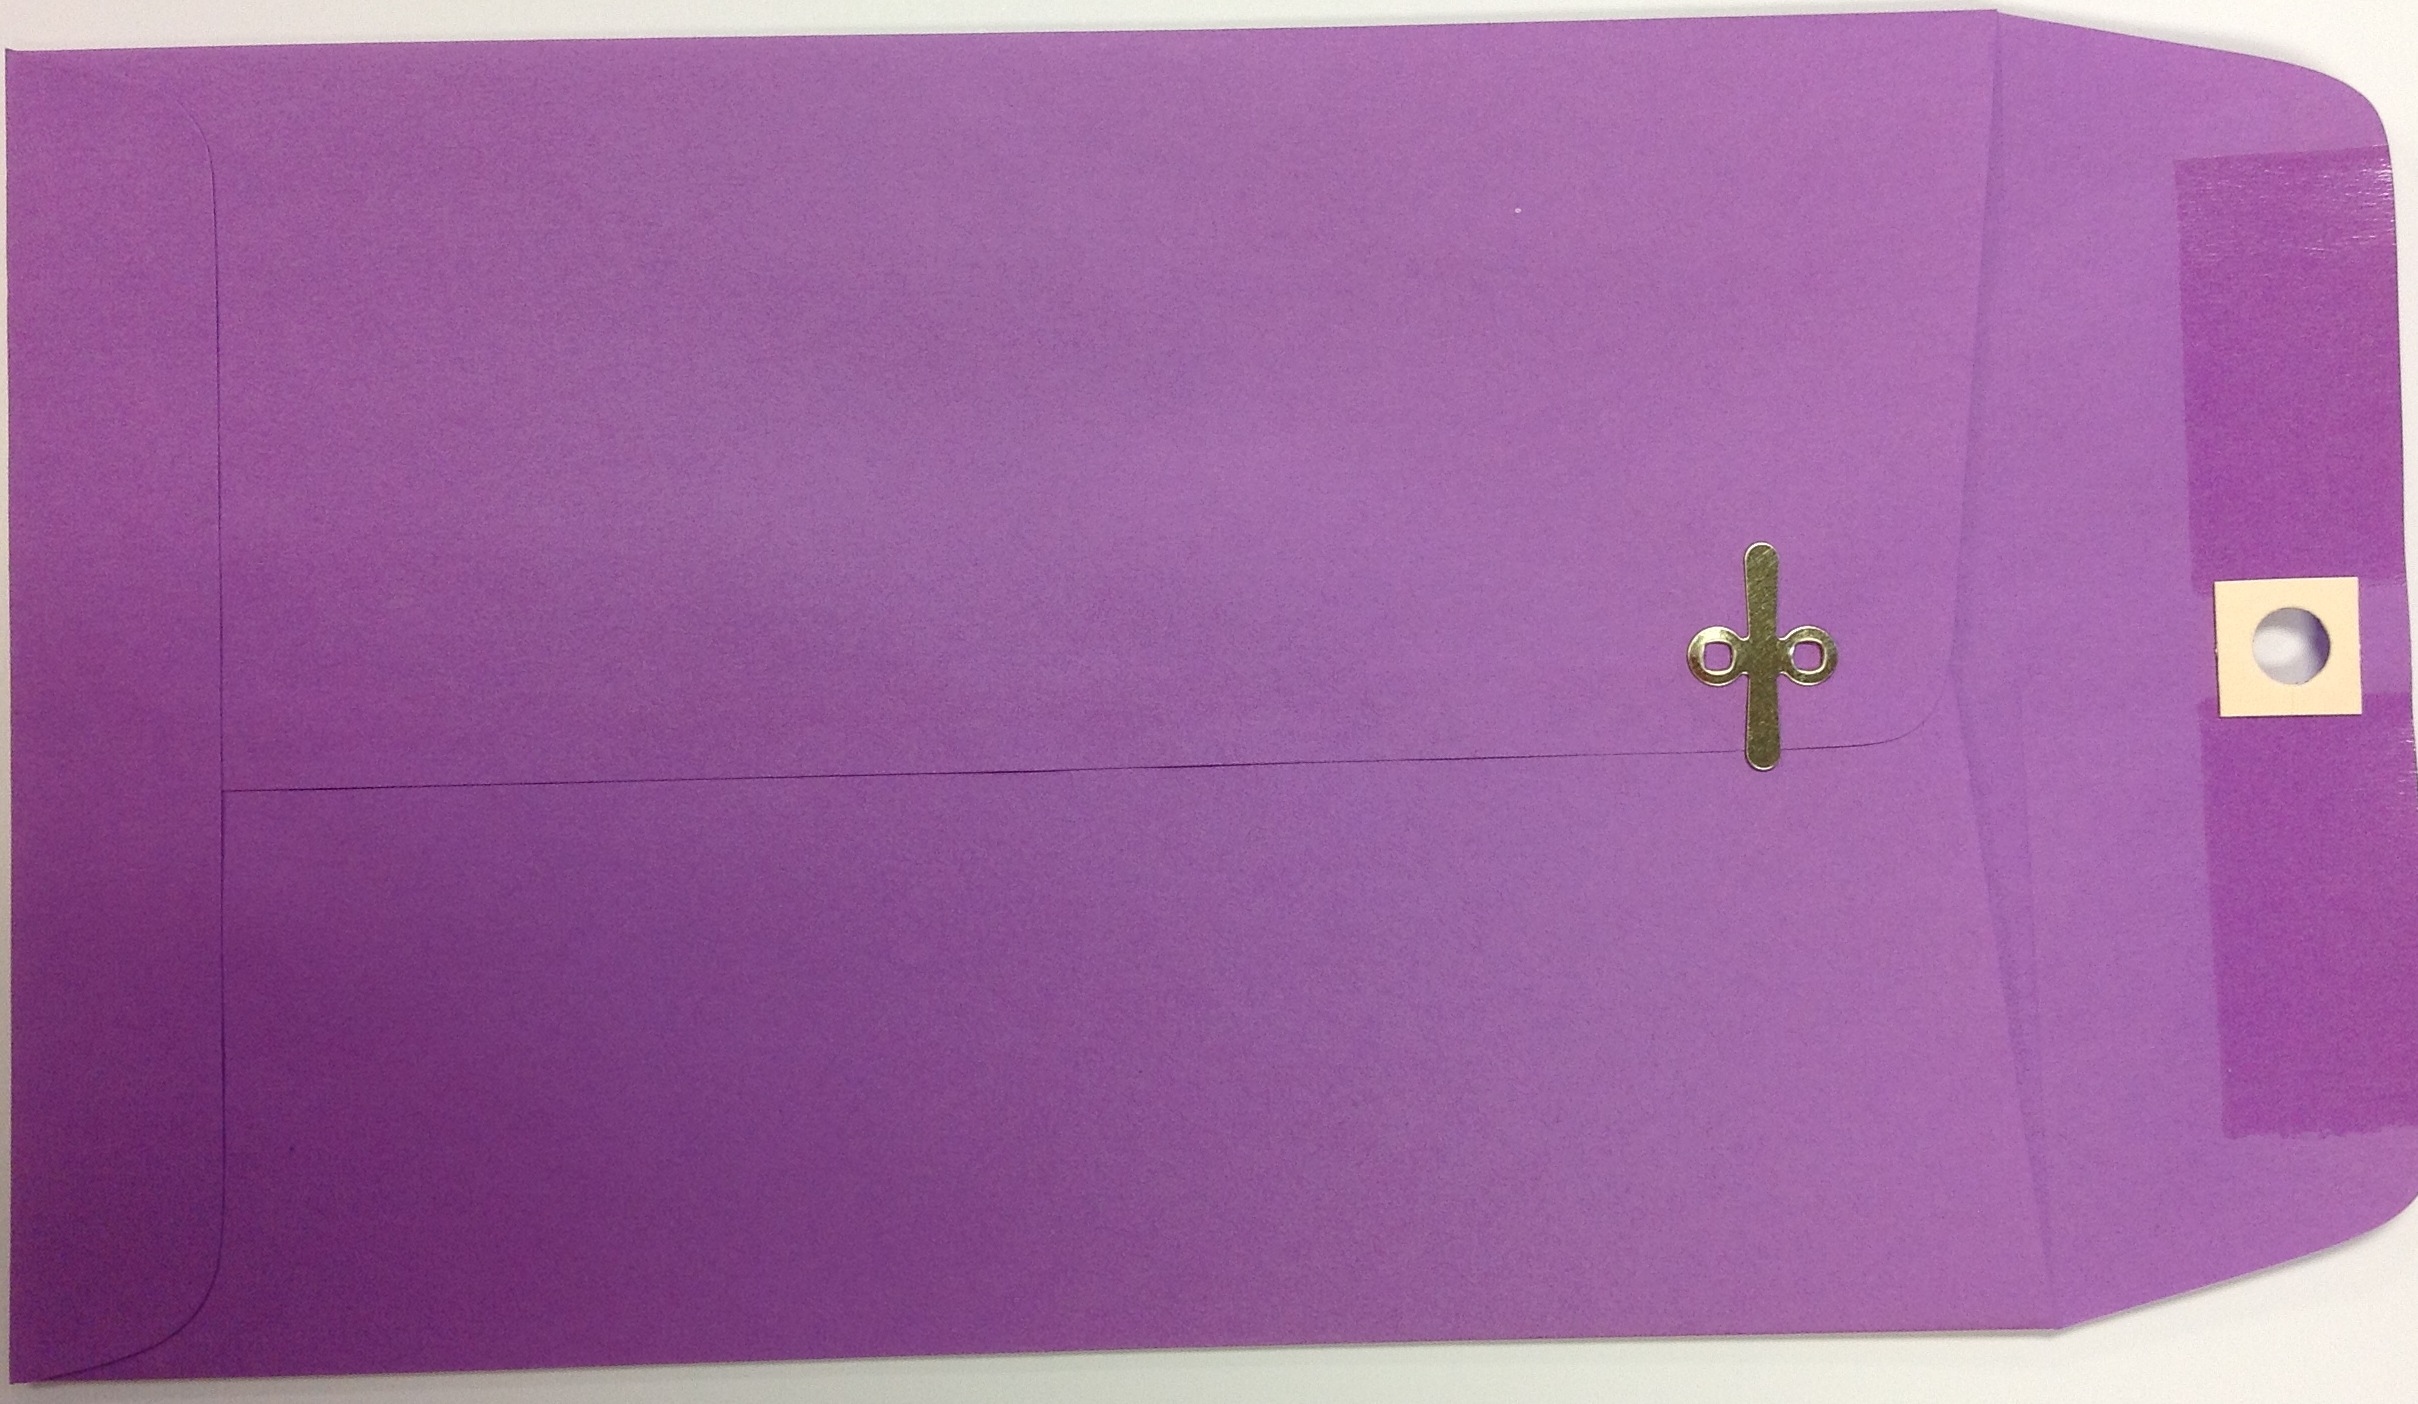 9X12 CLASP ENVELOPES BRIGHT PURPLE 10s